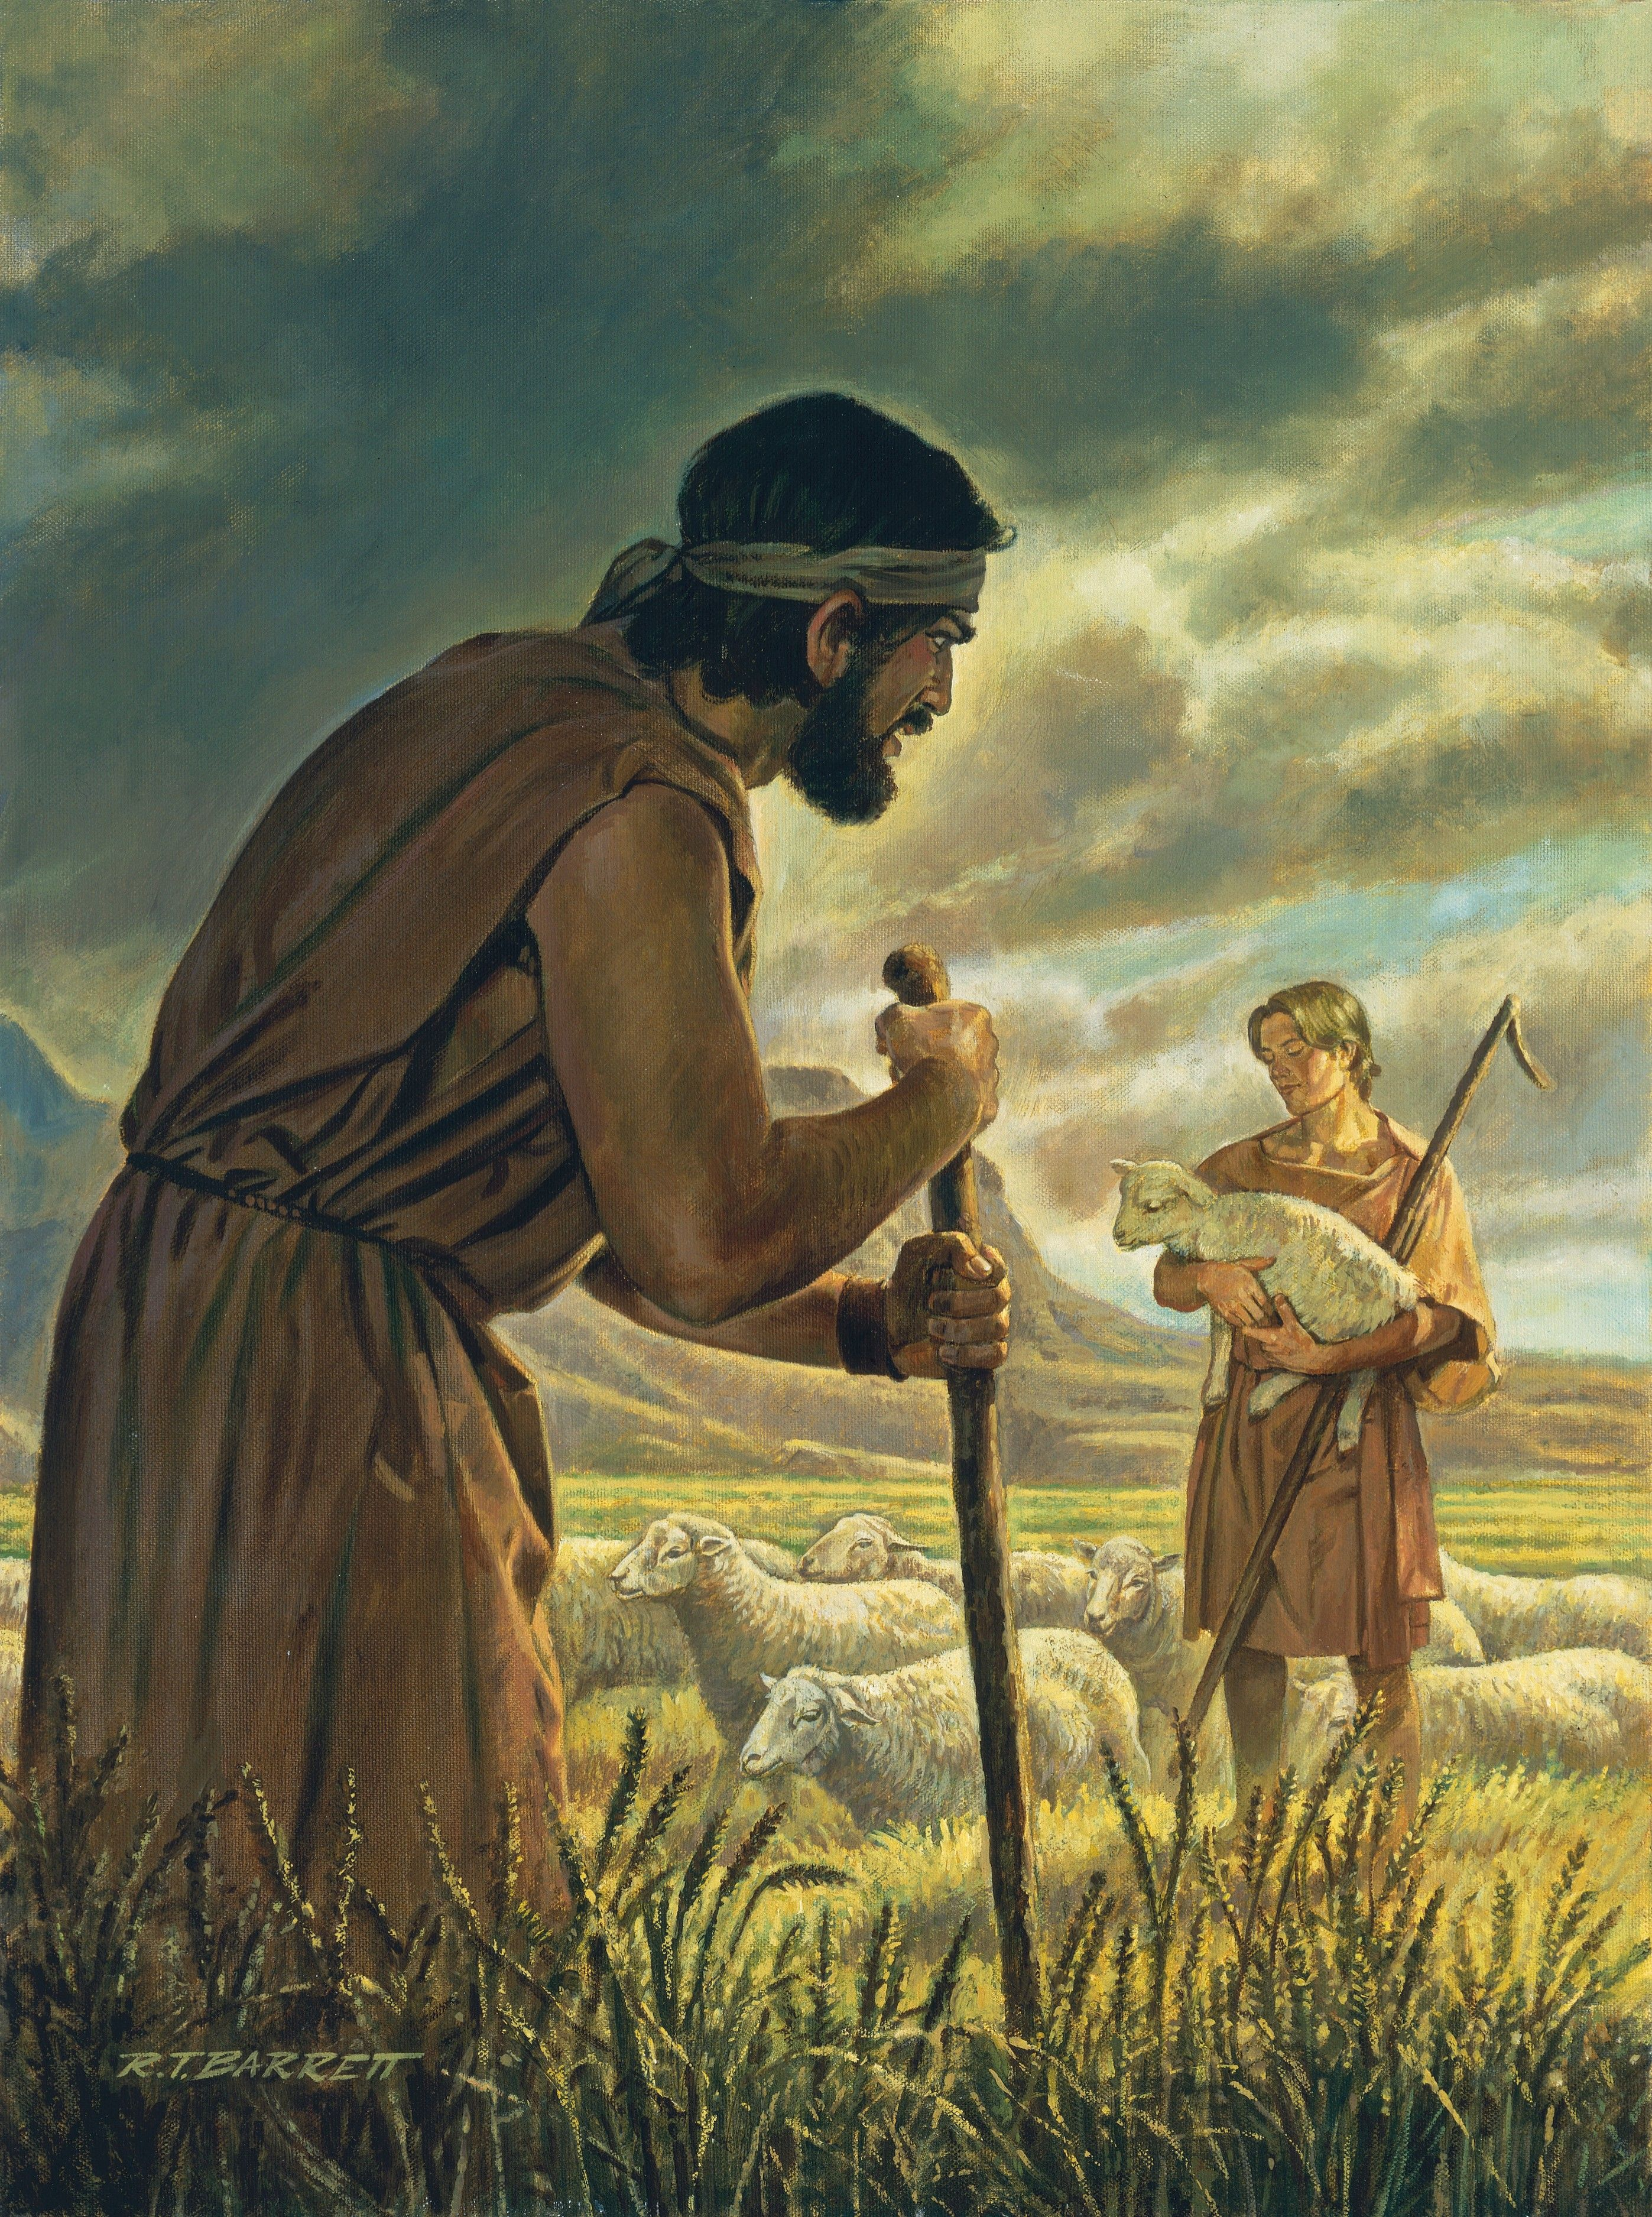 Cain and Abel, by Robert T. Barrett